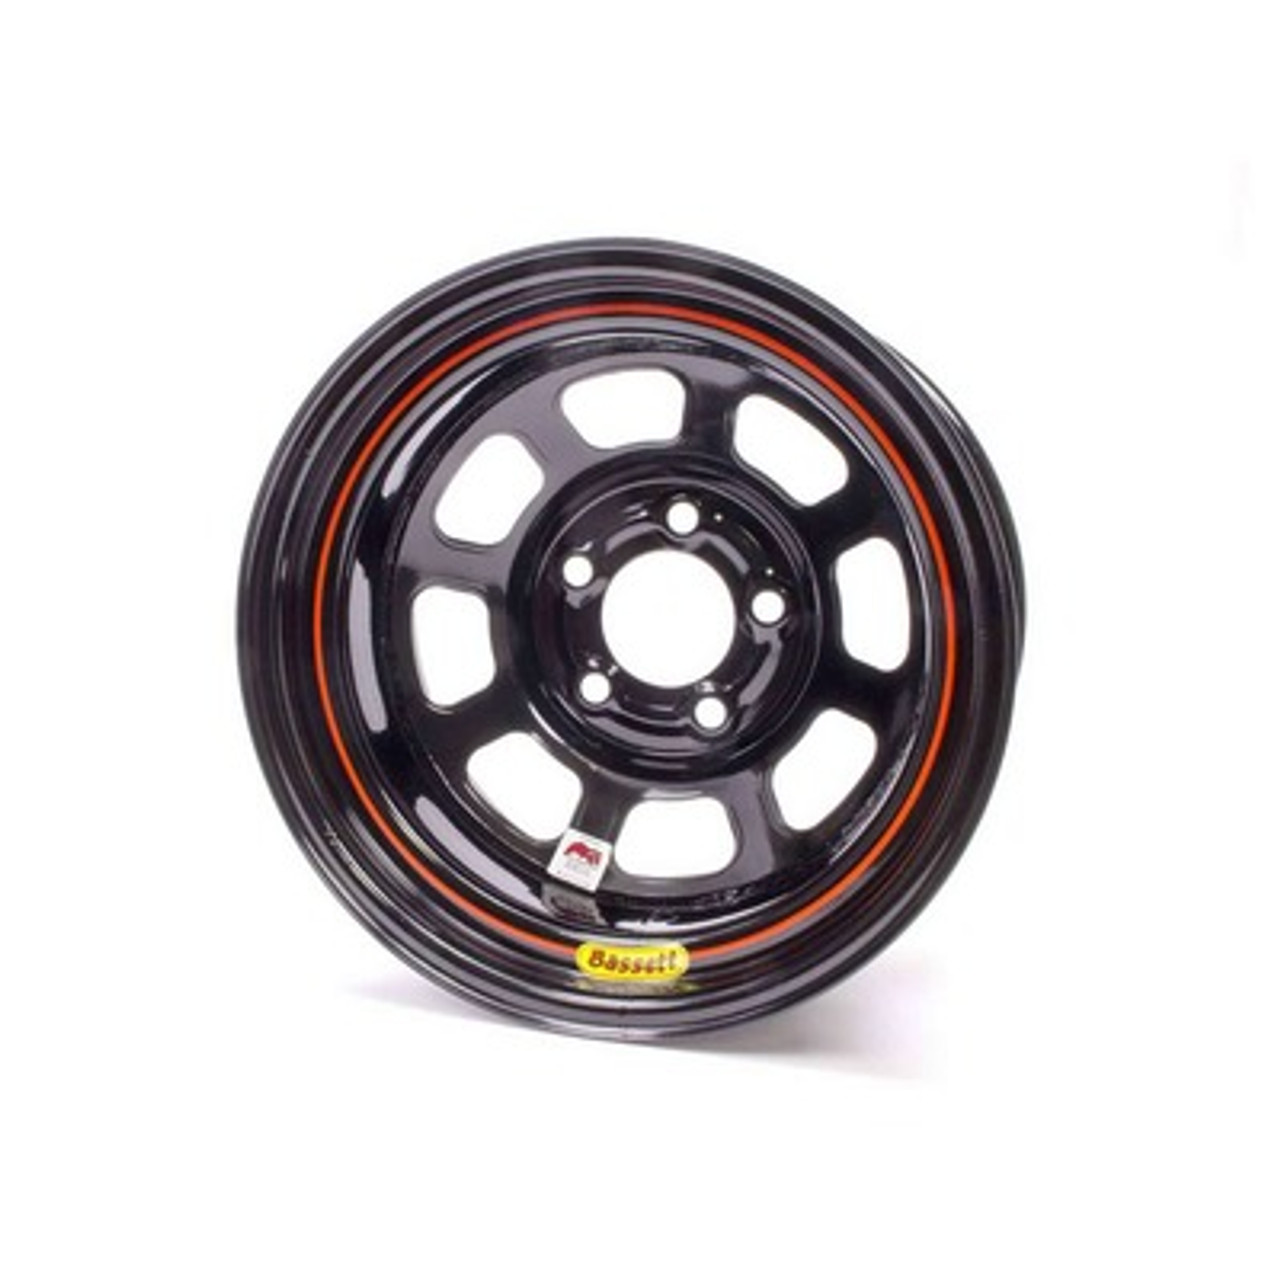 Wheels 15x8 (CLICK FOR OFFSET & HUB PATTERN)